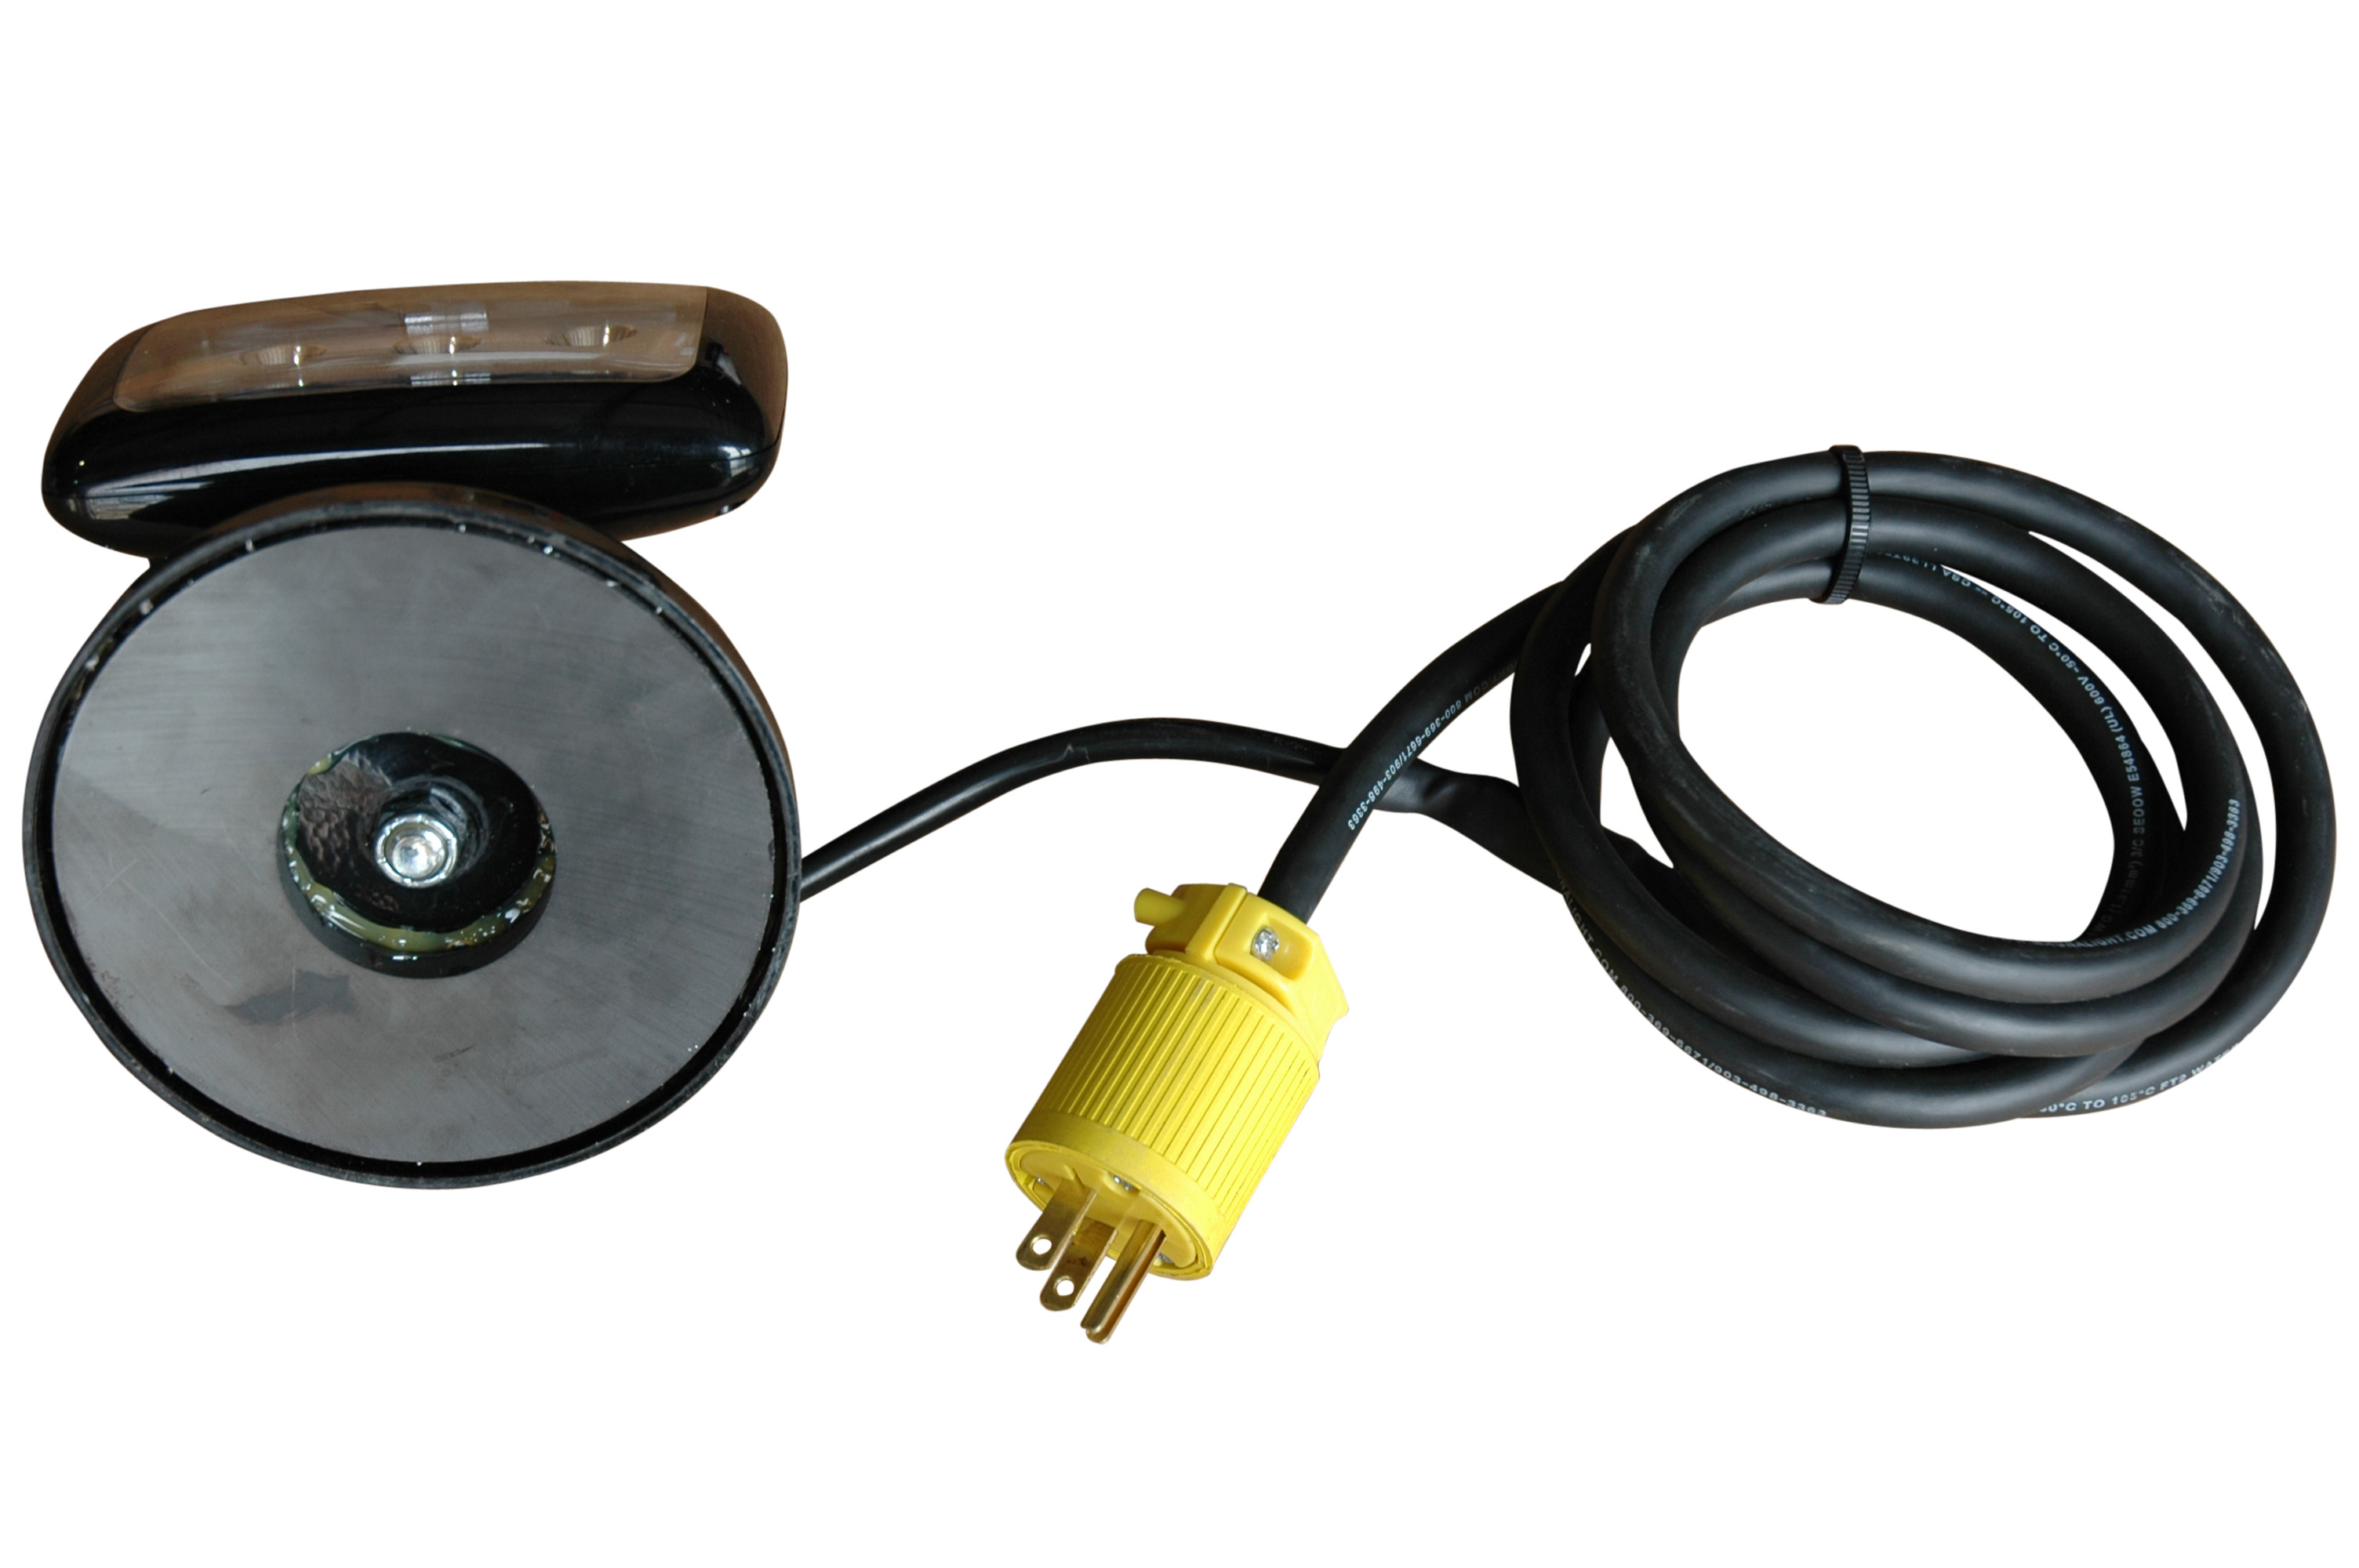 Larson Electronics Magnalight Adds Magnetic Mount Led Work Lights Wiring Mounted 6 Watt Light With 100lb Basemagnetic Base